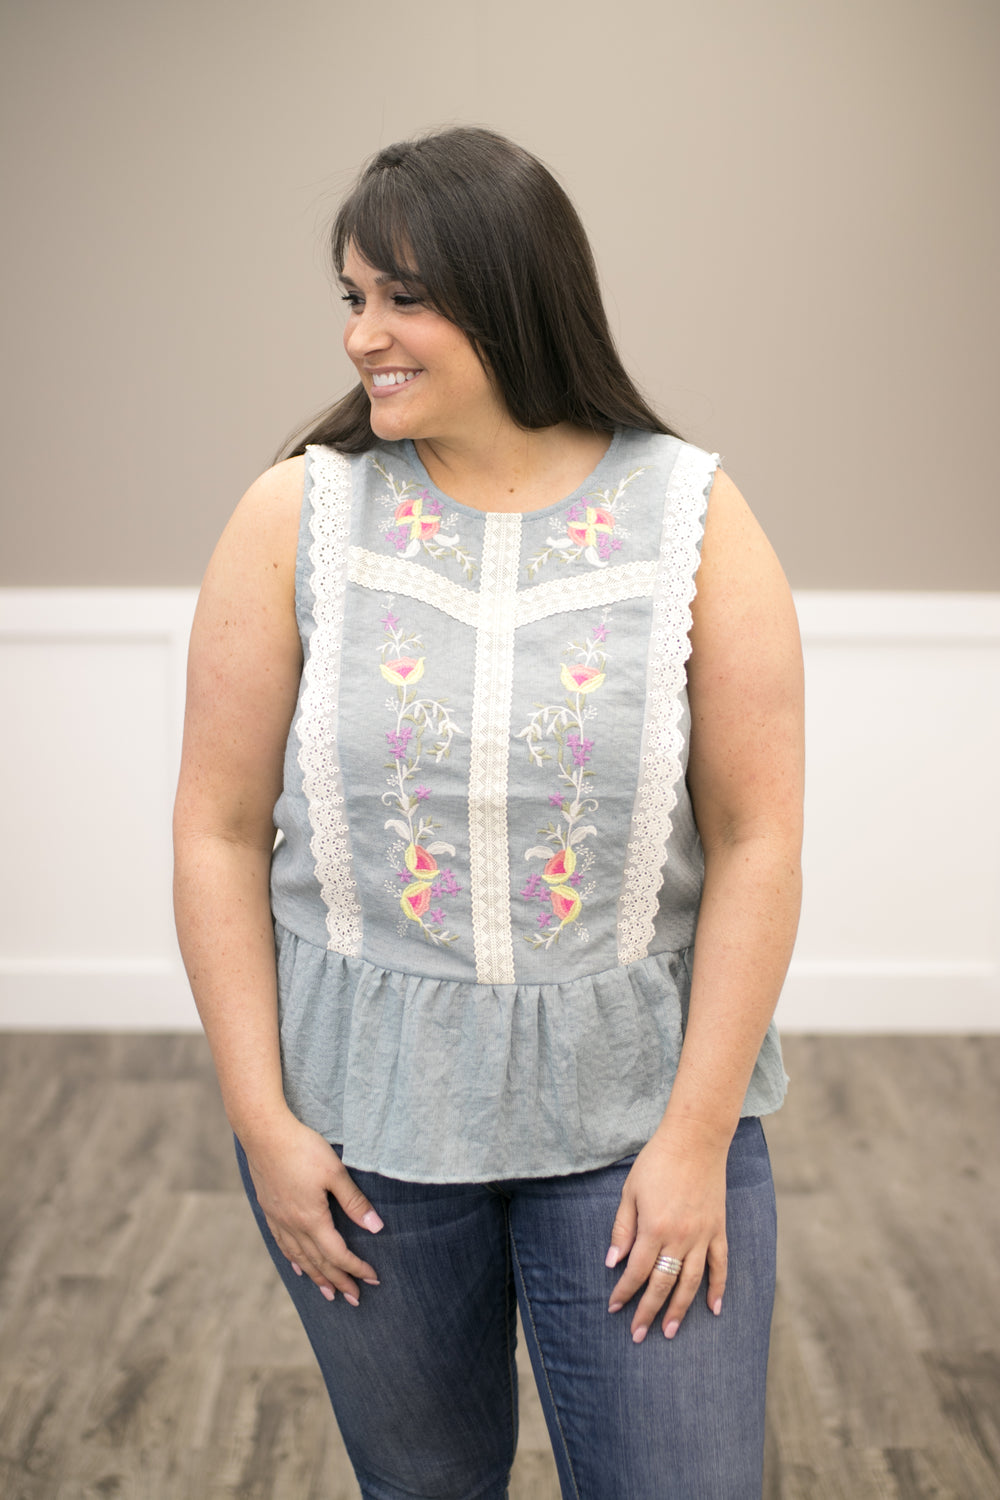 Southern Comfort Embroidered Top - Dusty Blue